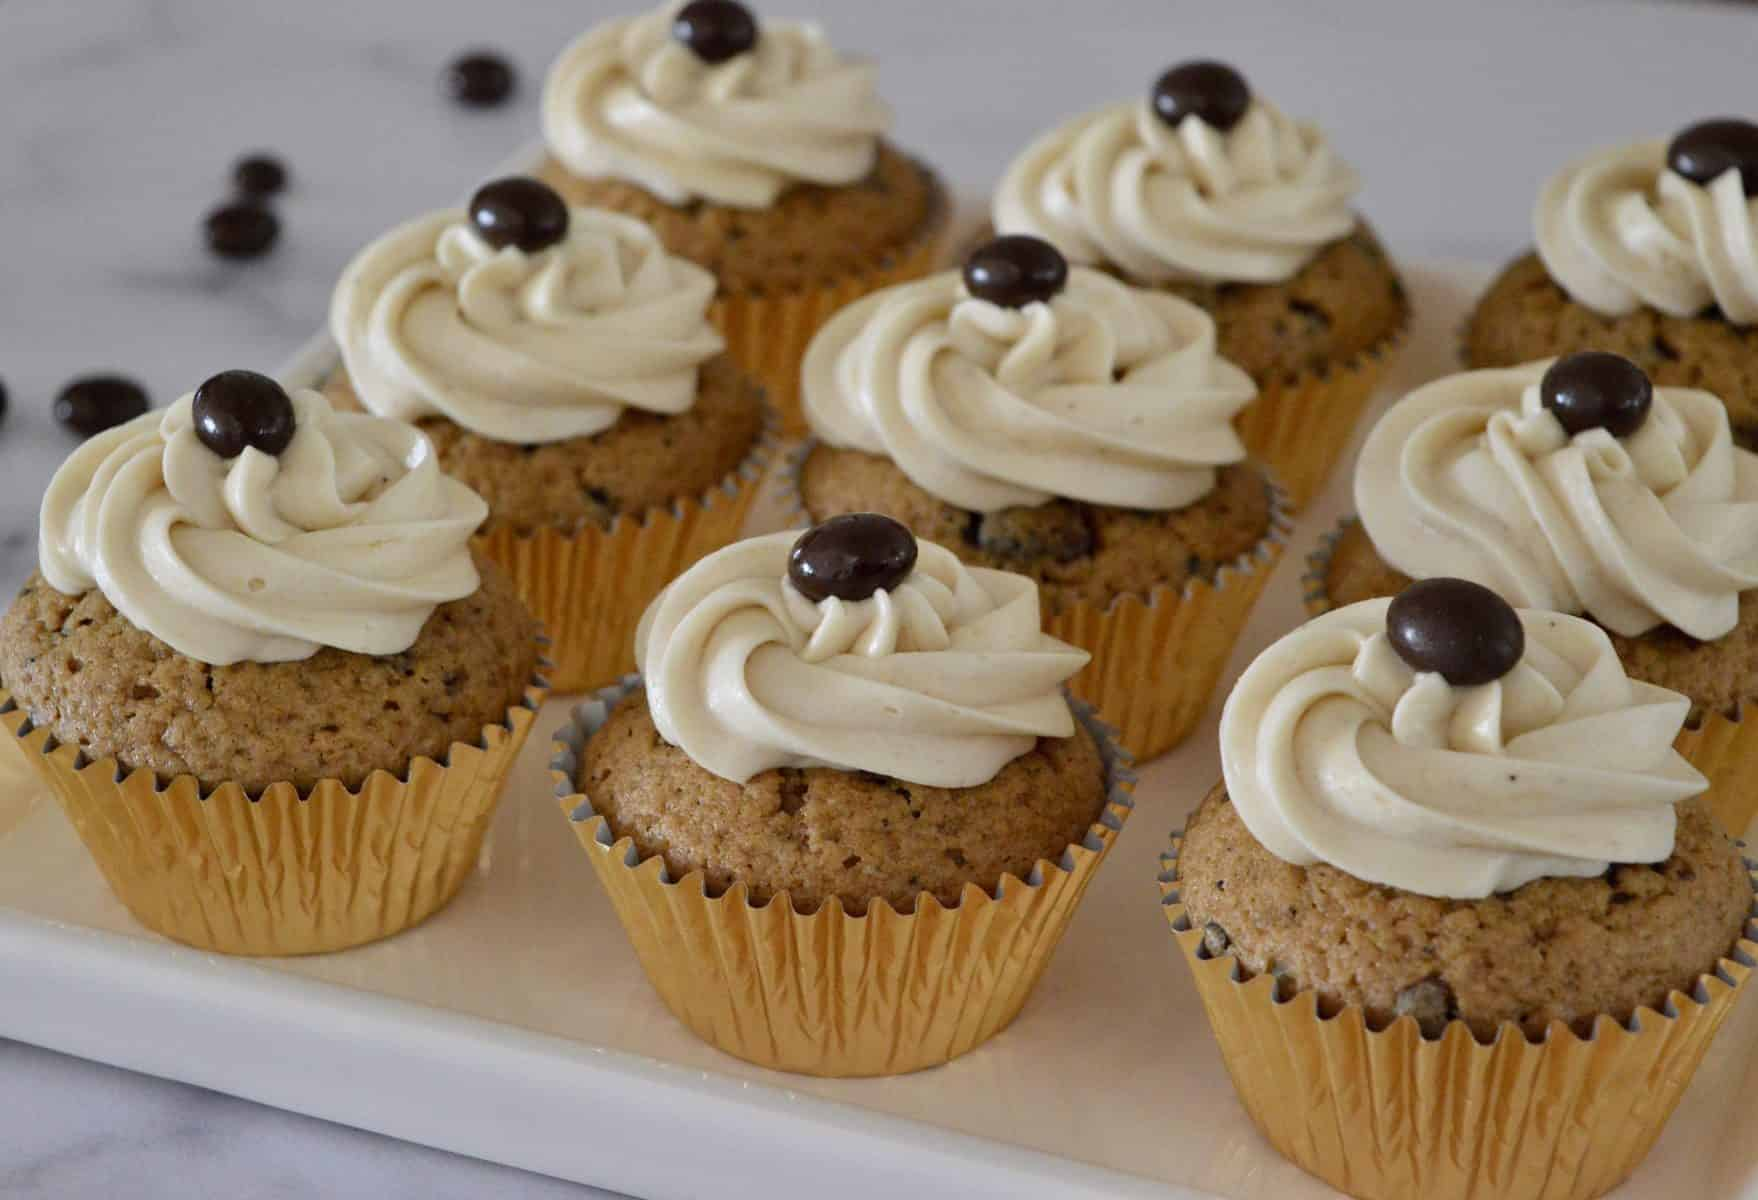 Espresso Cupcakes with chocolate covered espresso beans on top.